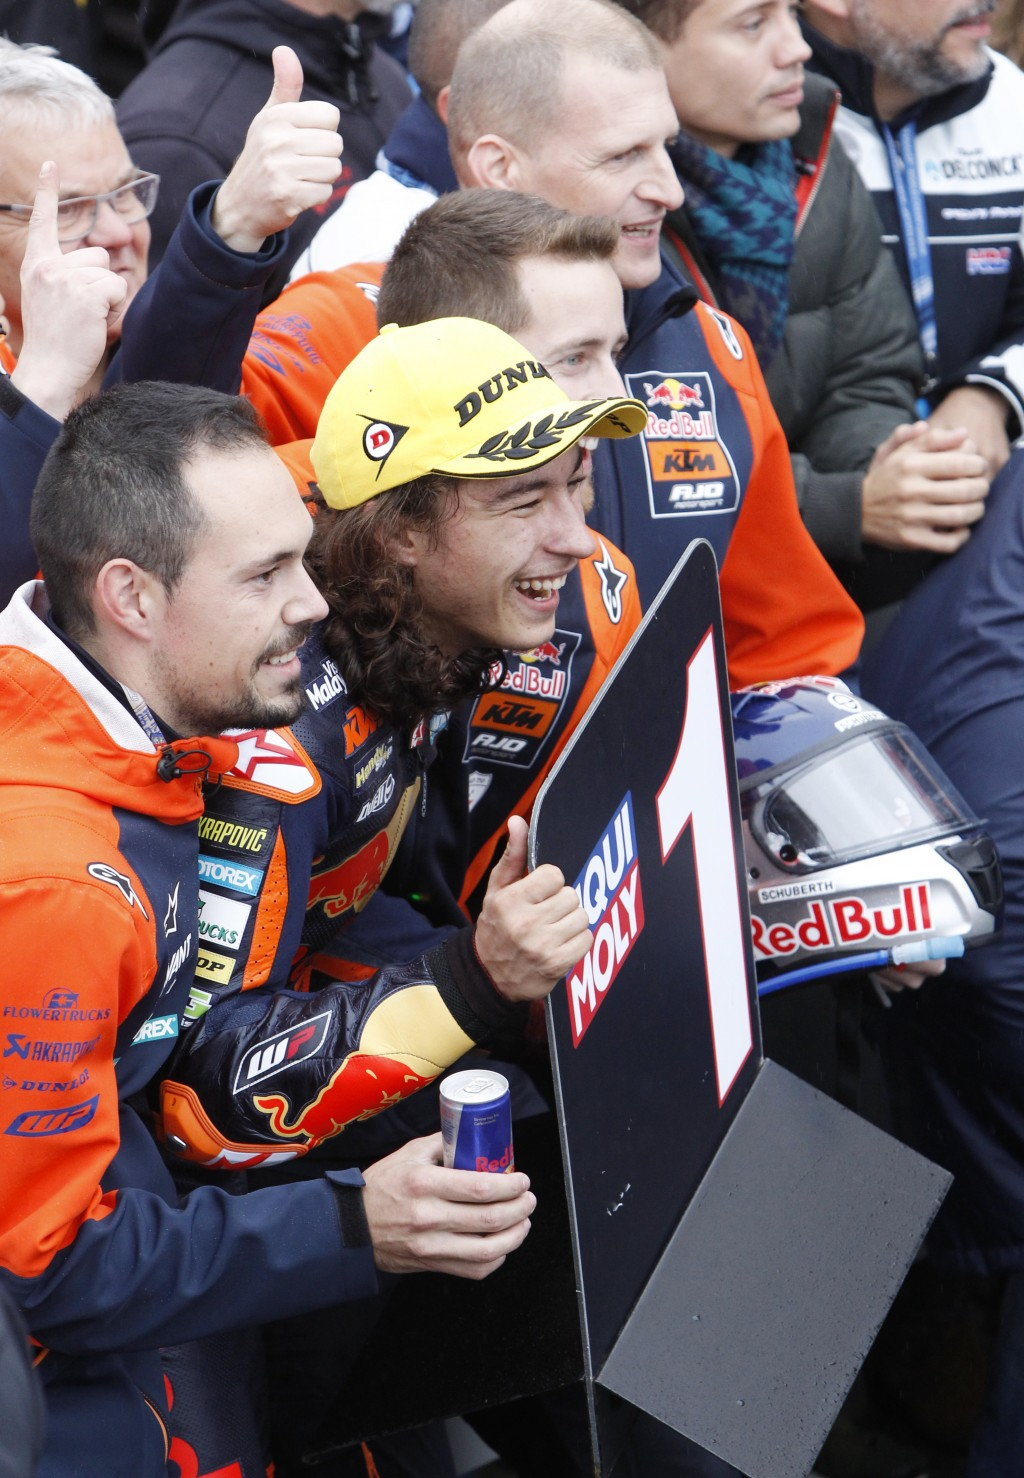 Moto3 KTM rider Can Oncu of Turkey, centre, celebrates with team members after winning the Moto3 Motorcycle Grand Prix at the Ricardo Tormo circuit in...